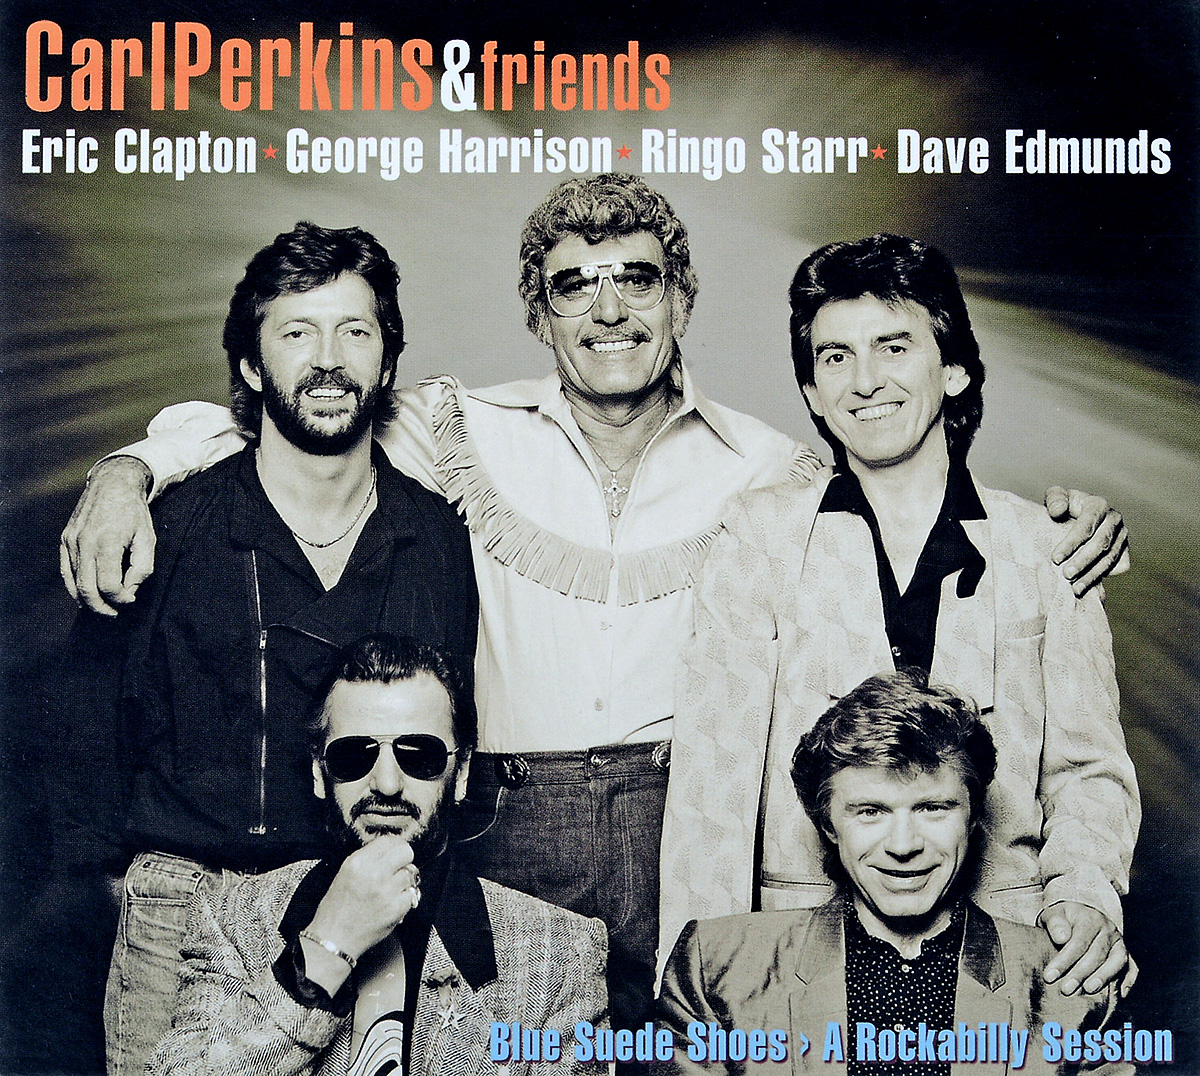 Carl Perkins & Friends: Blue Suede Shoes:  Rockabilly Session: 30th Anniversary Edition (CD + DVD)